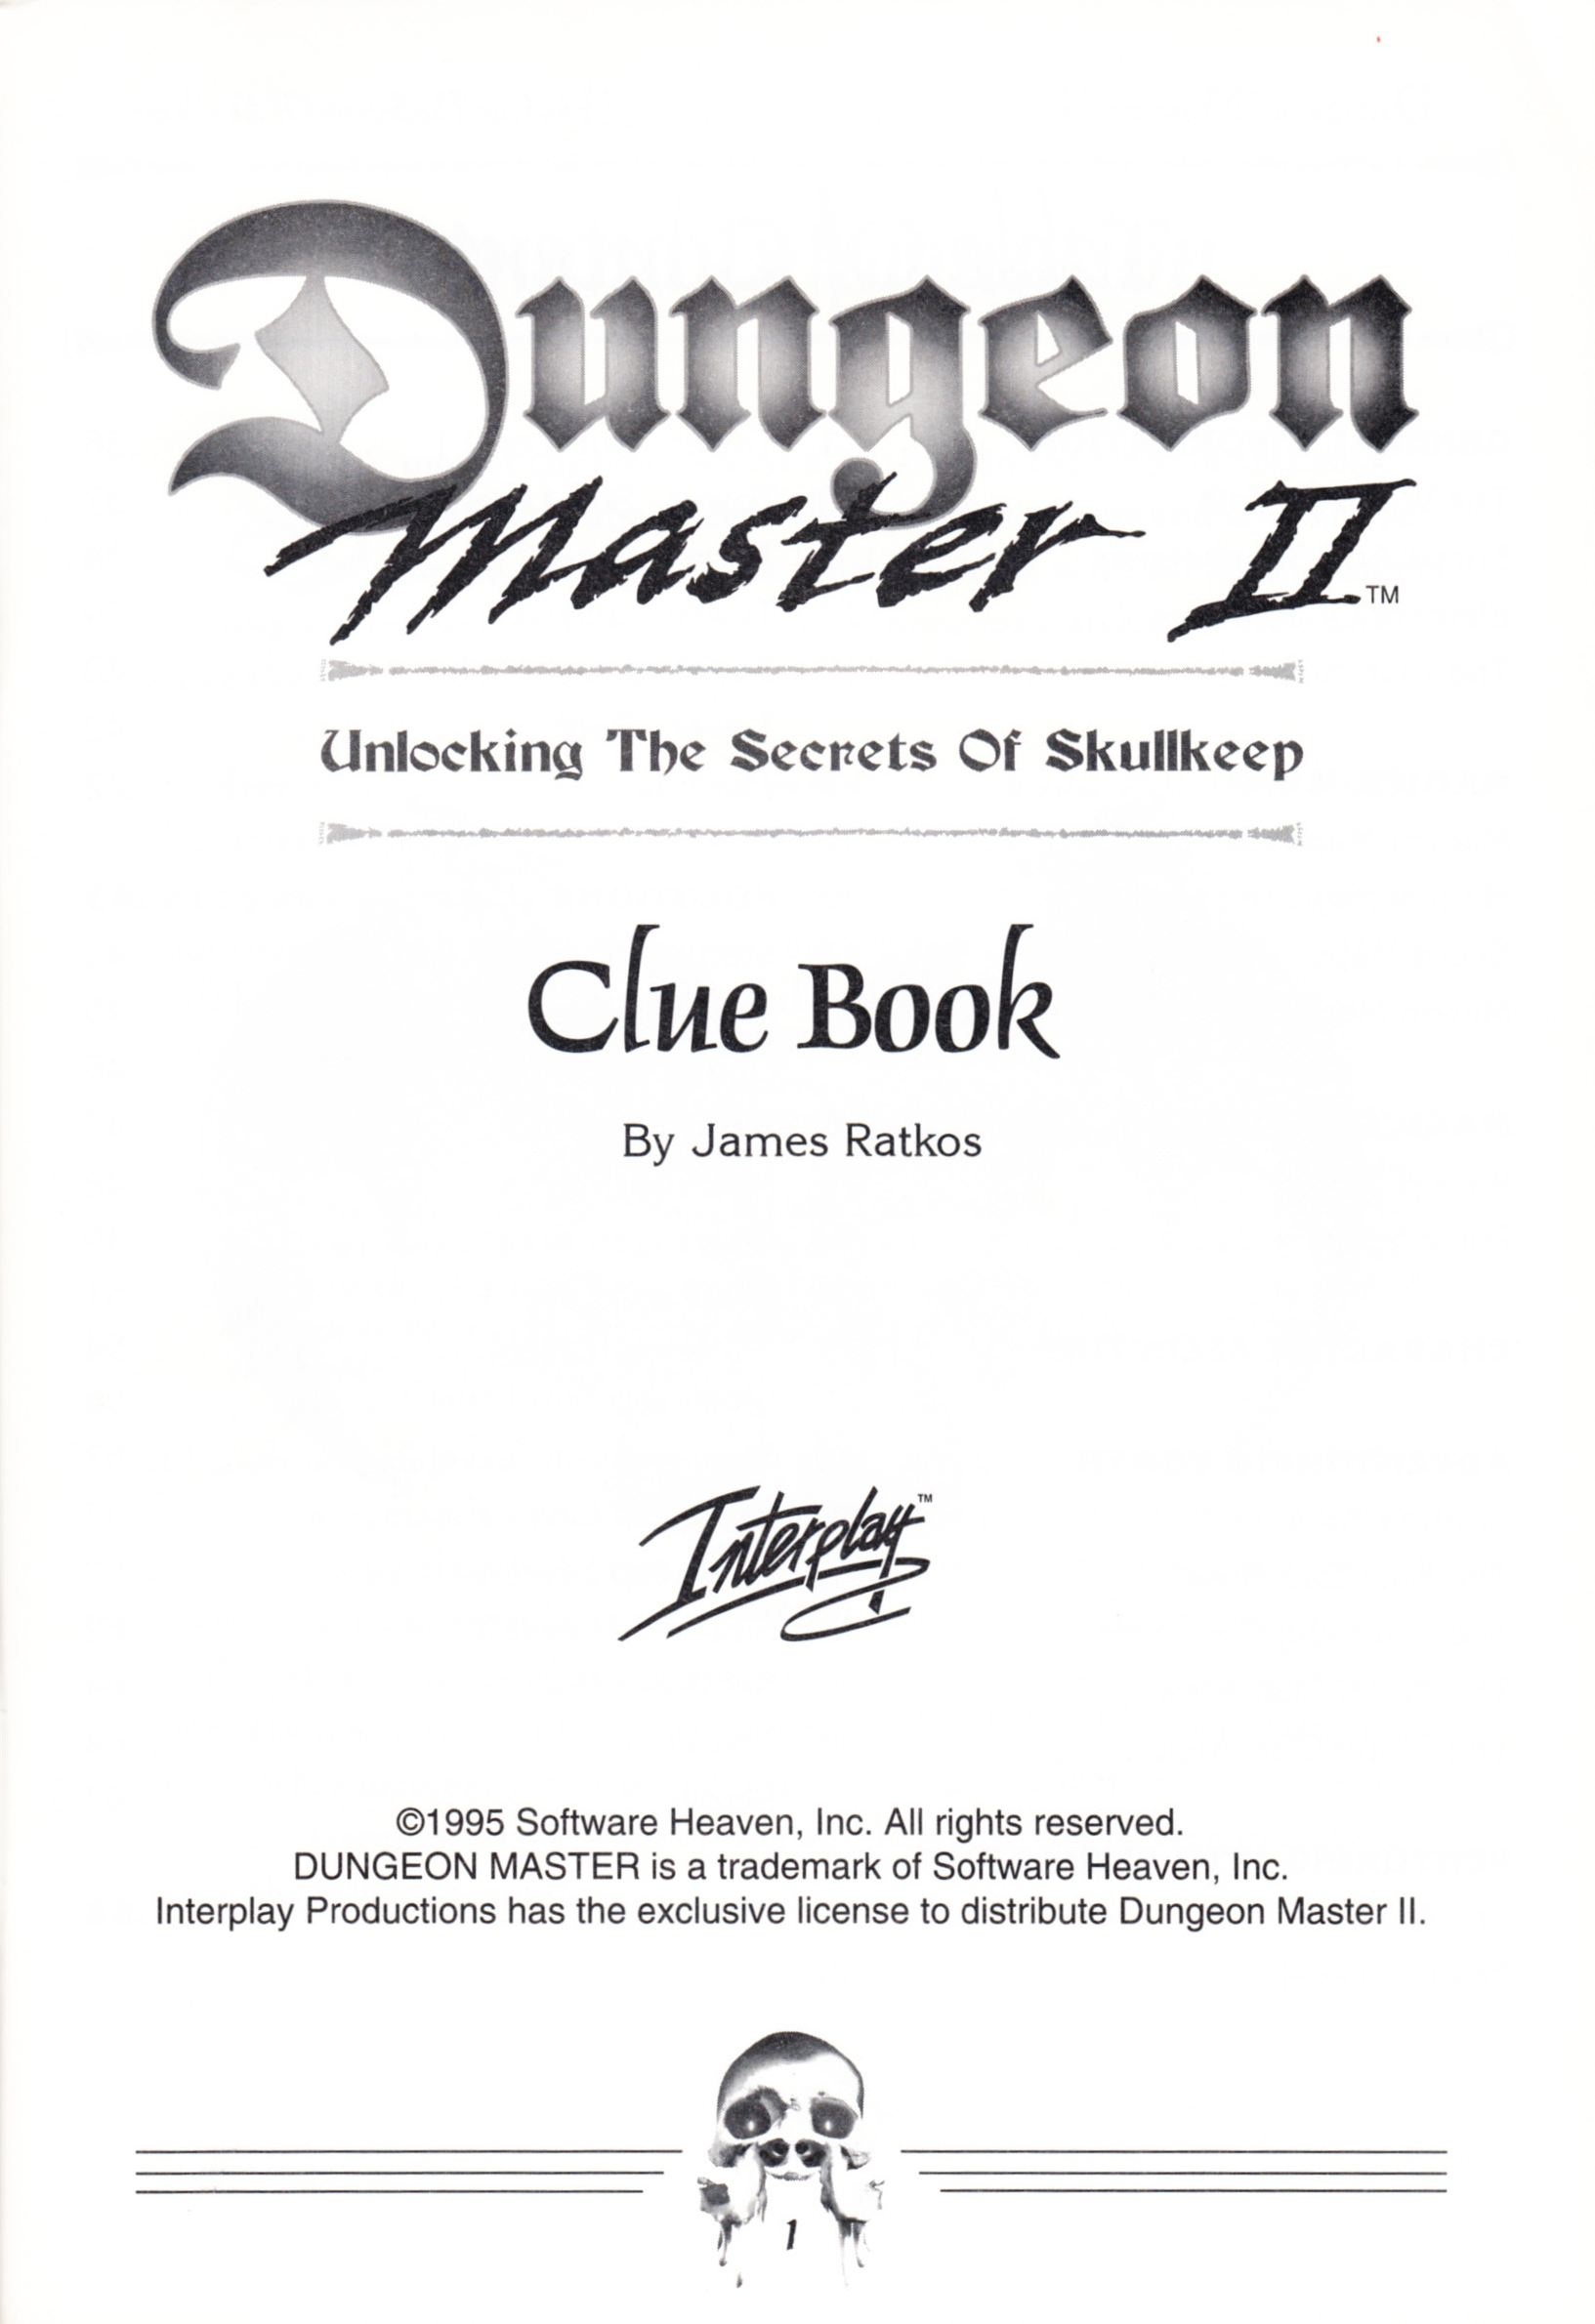 Hint Book - Dungeon Master II Clue Book - US - Page 003 - Scan